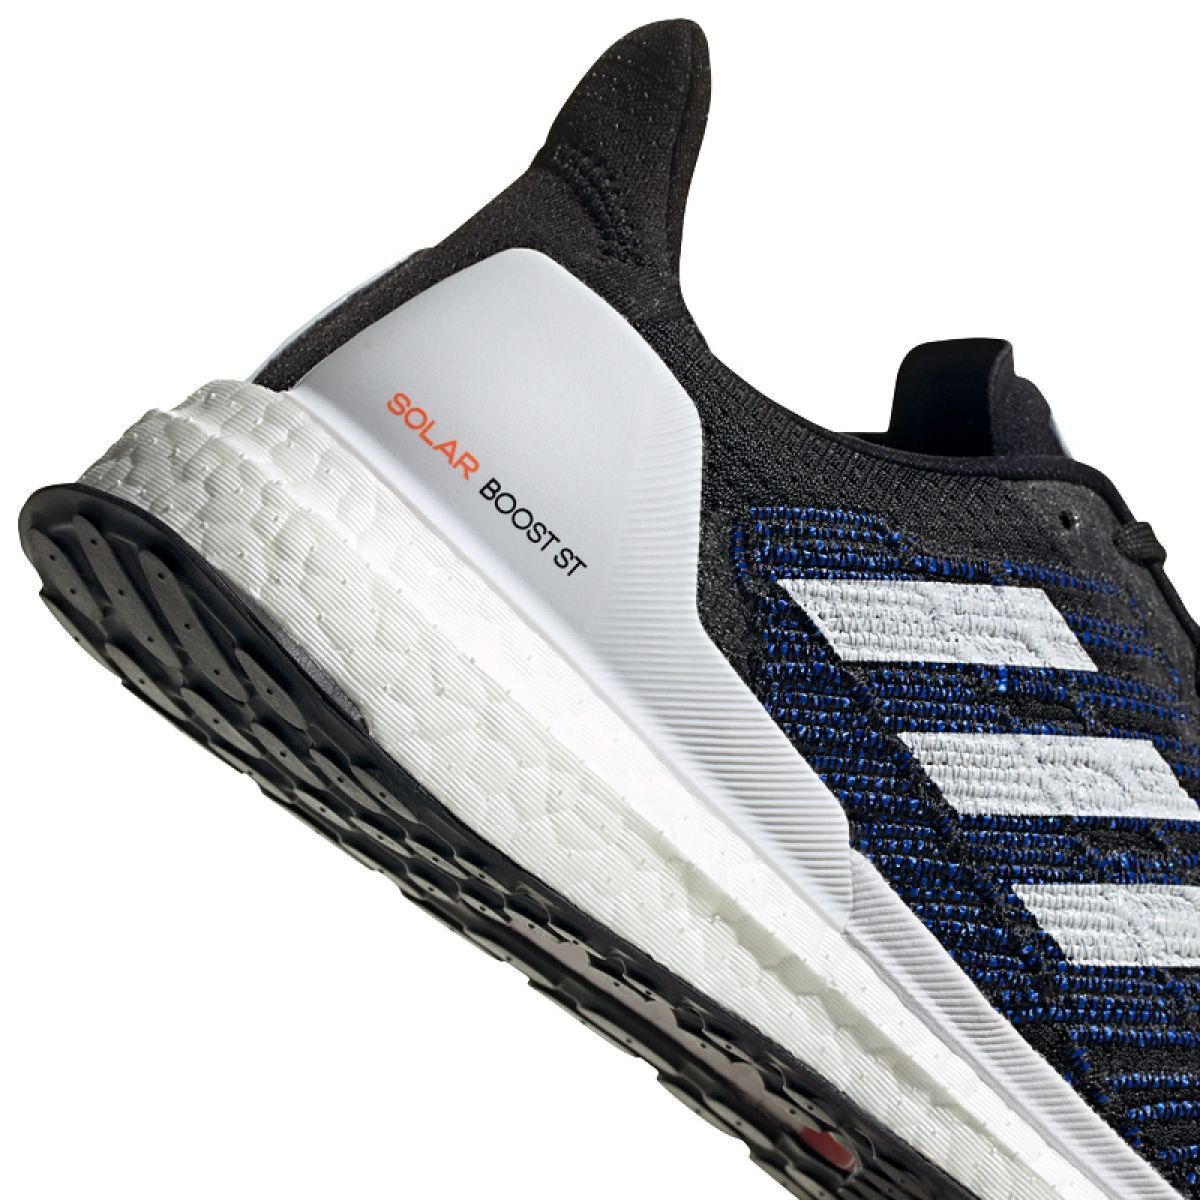 Buty Biegowe Adidas Solar Boost St 19 M Ee4316 Granatowe Running Shoes For Men Running Shoes Man Running